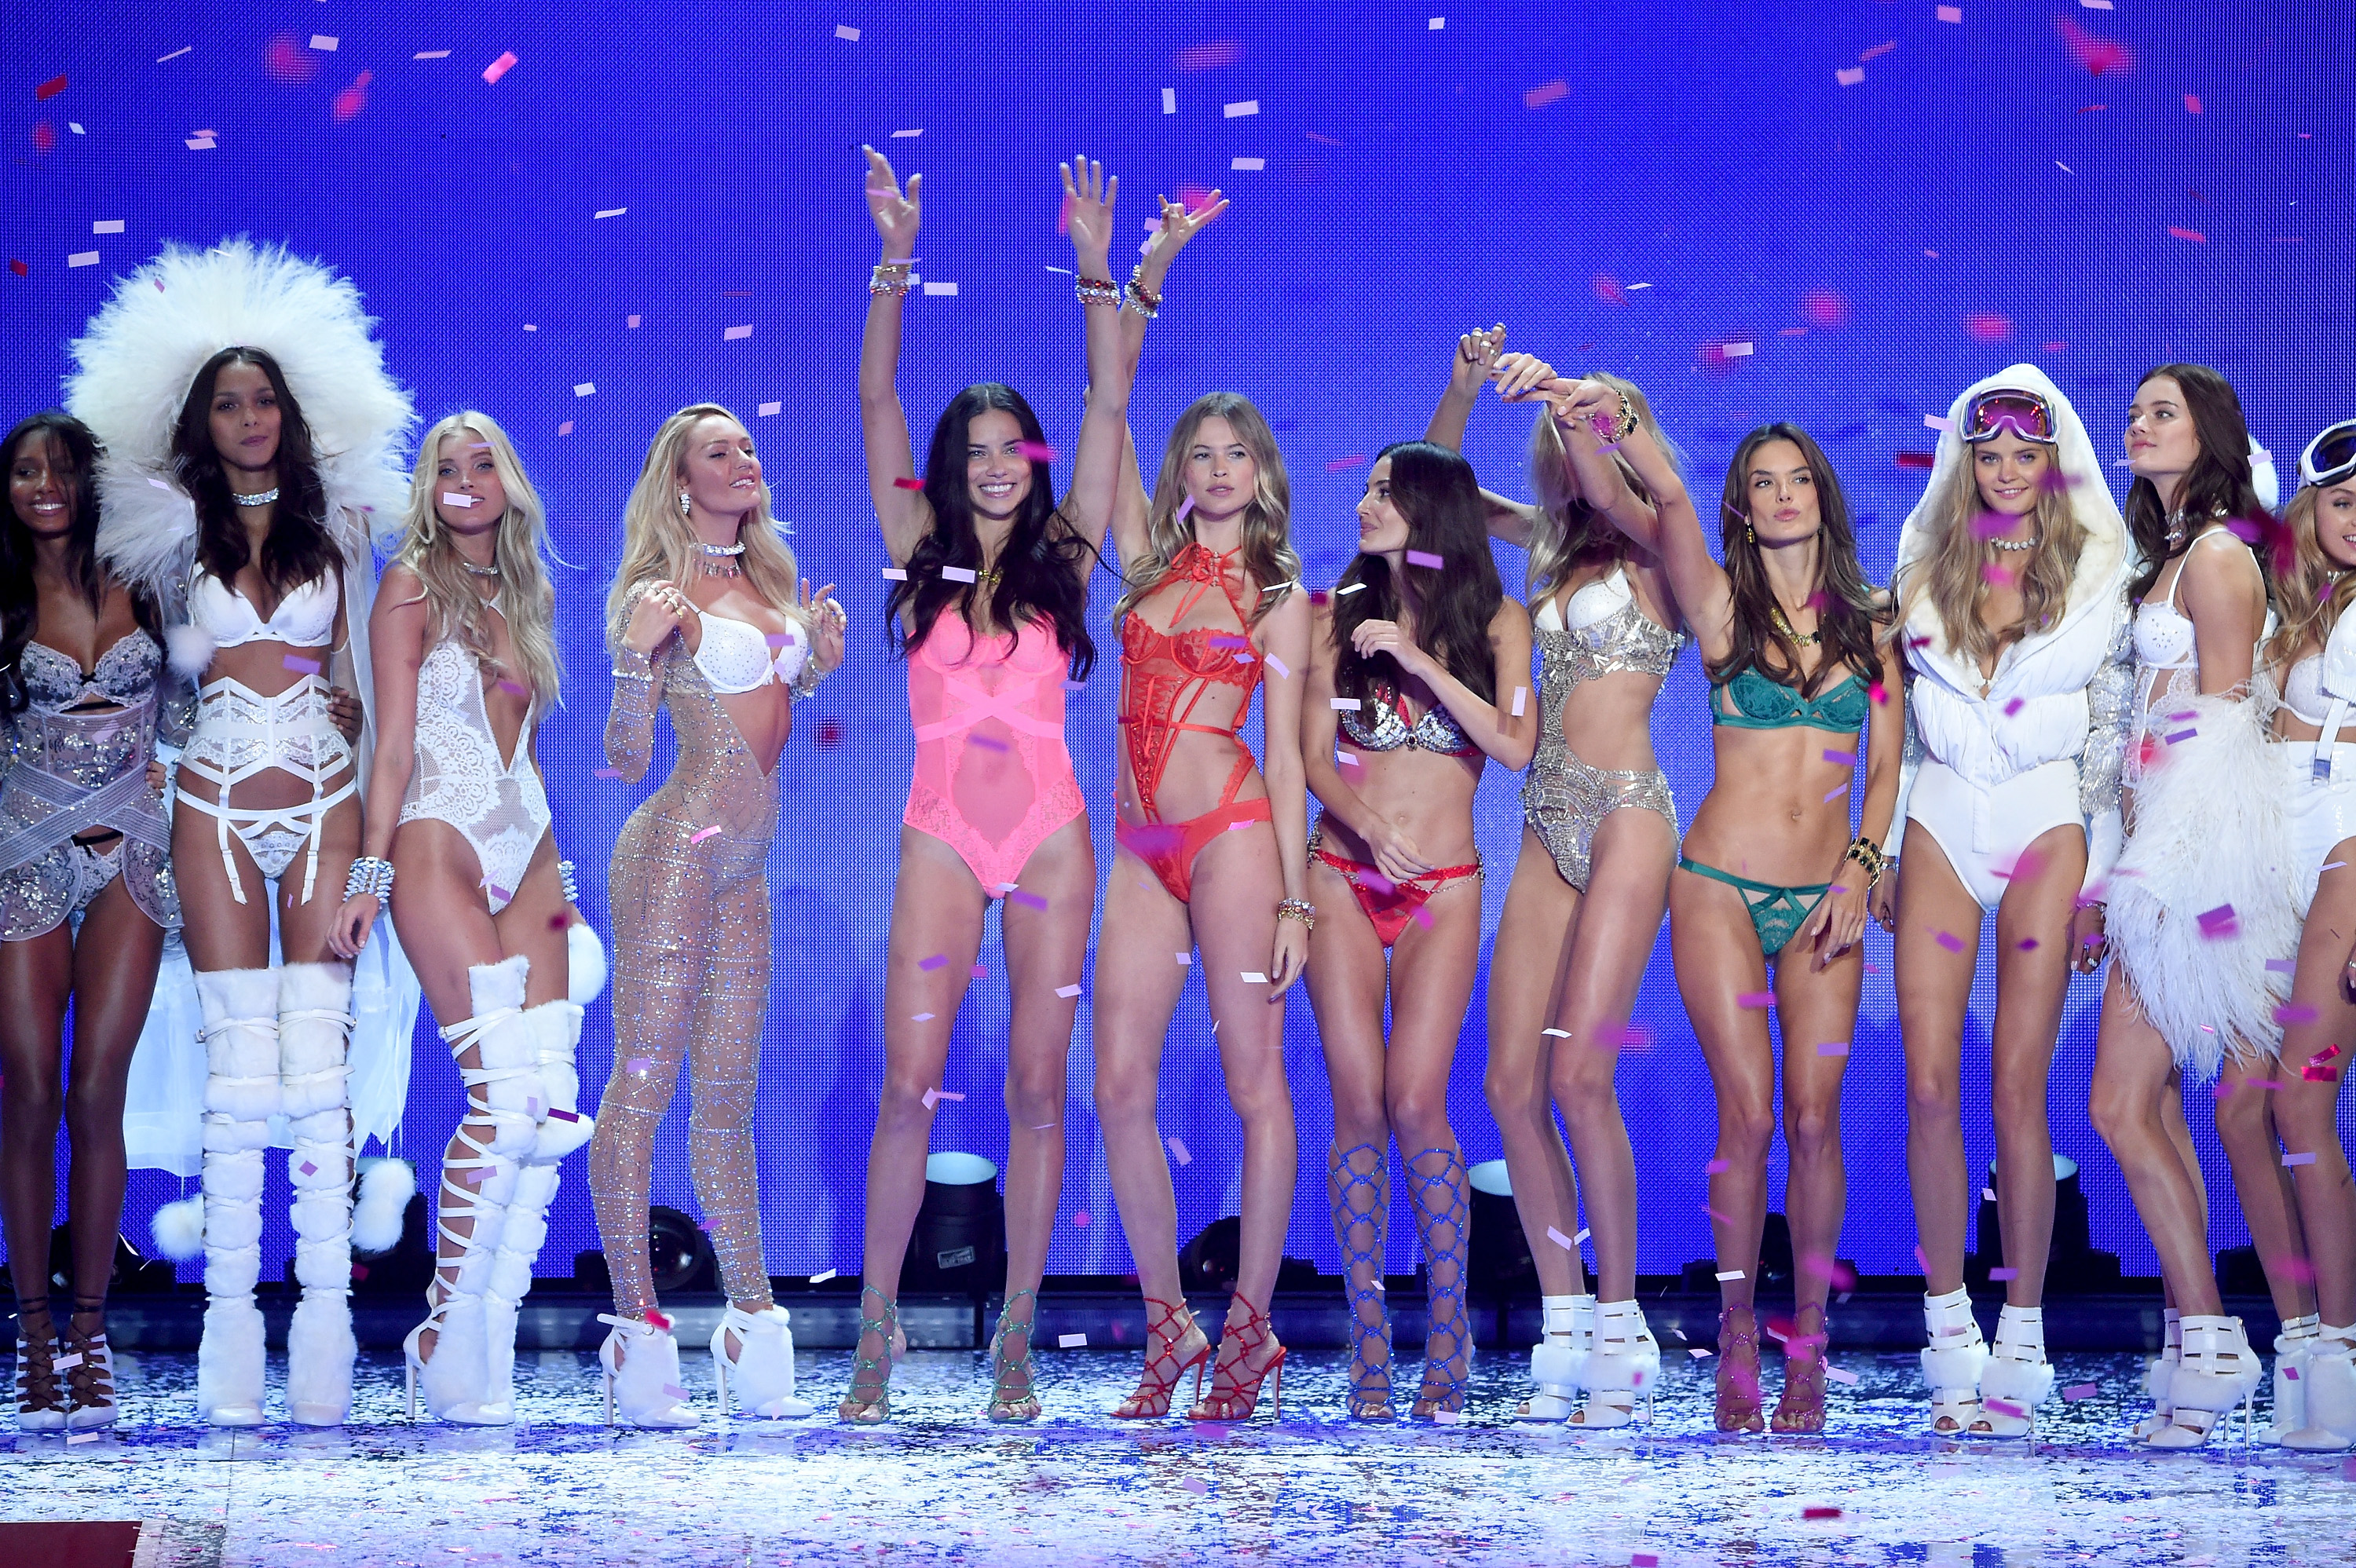 f3efb5e970d All The Models In The 2015 Victoria s Secret Fashion Show Look As Beautiful  As Ever — PHOTOS